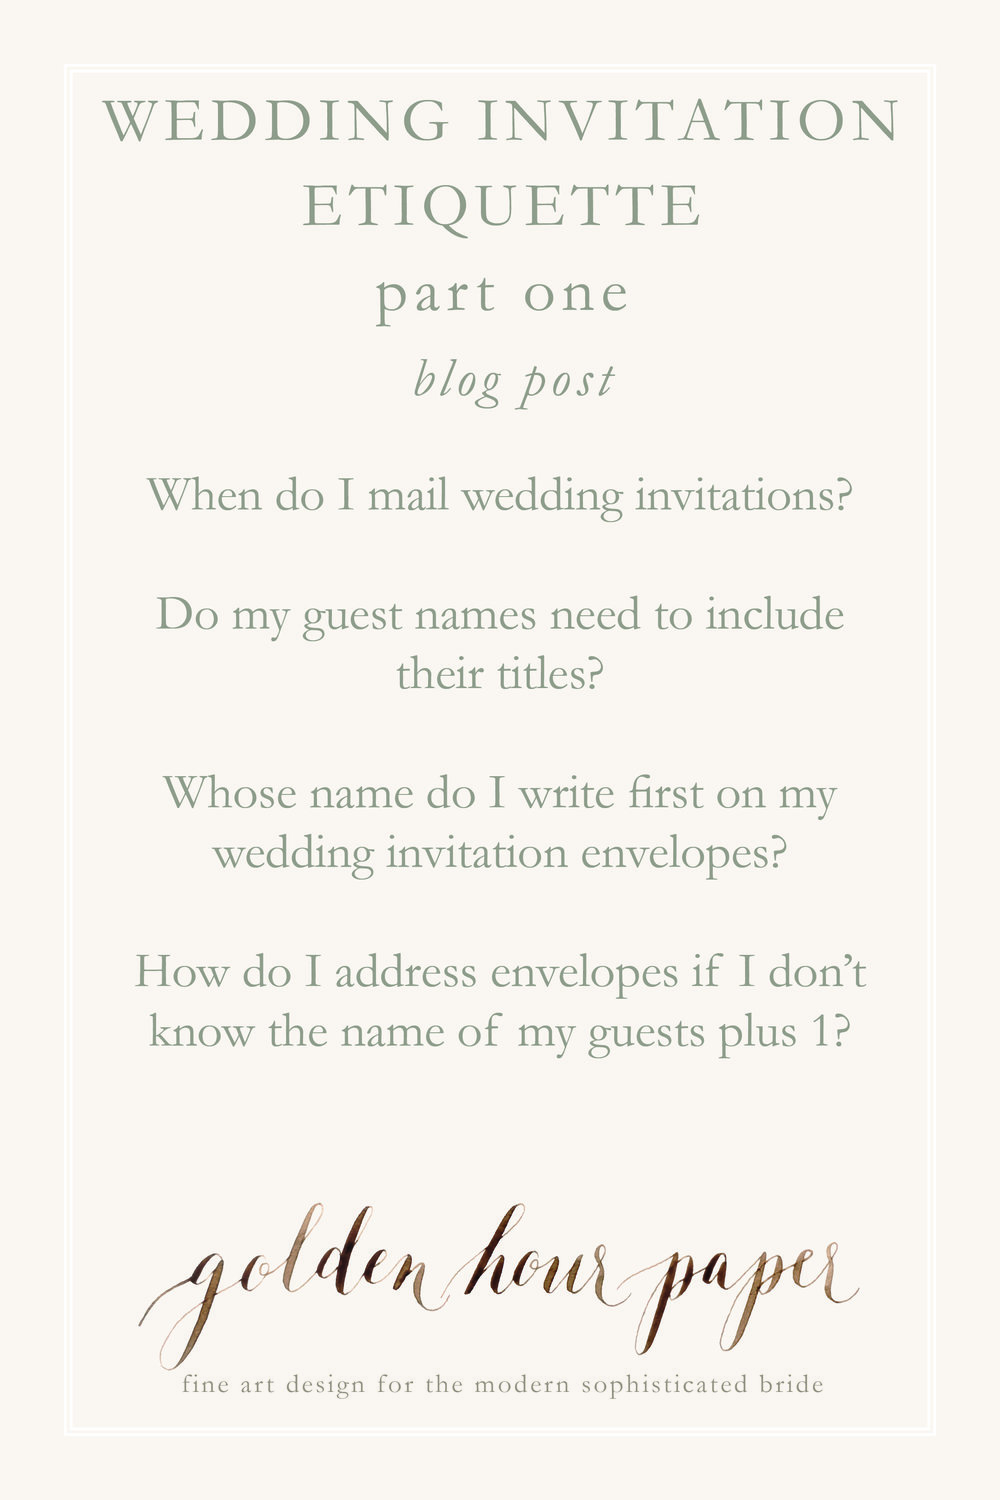 Wedding invitation etiquette | part 1